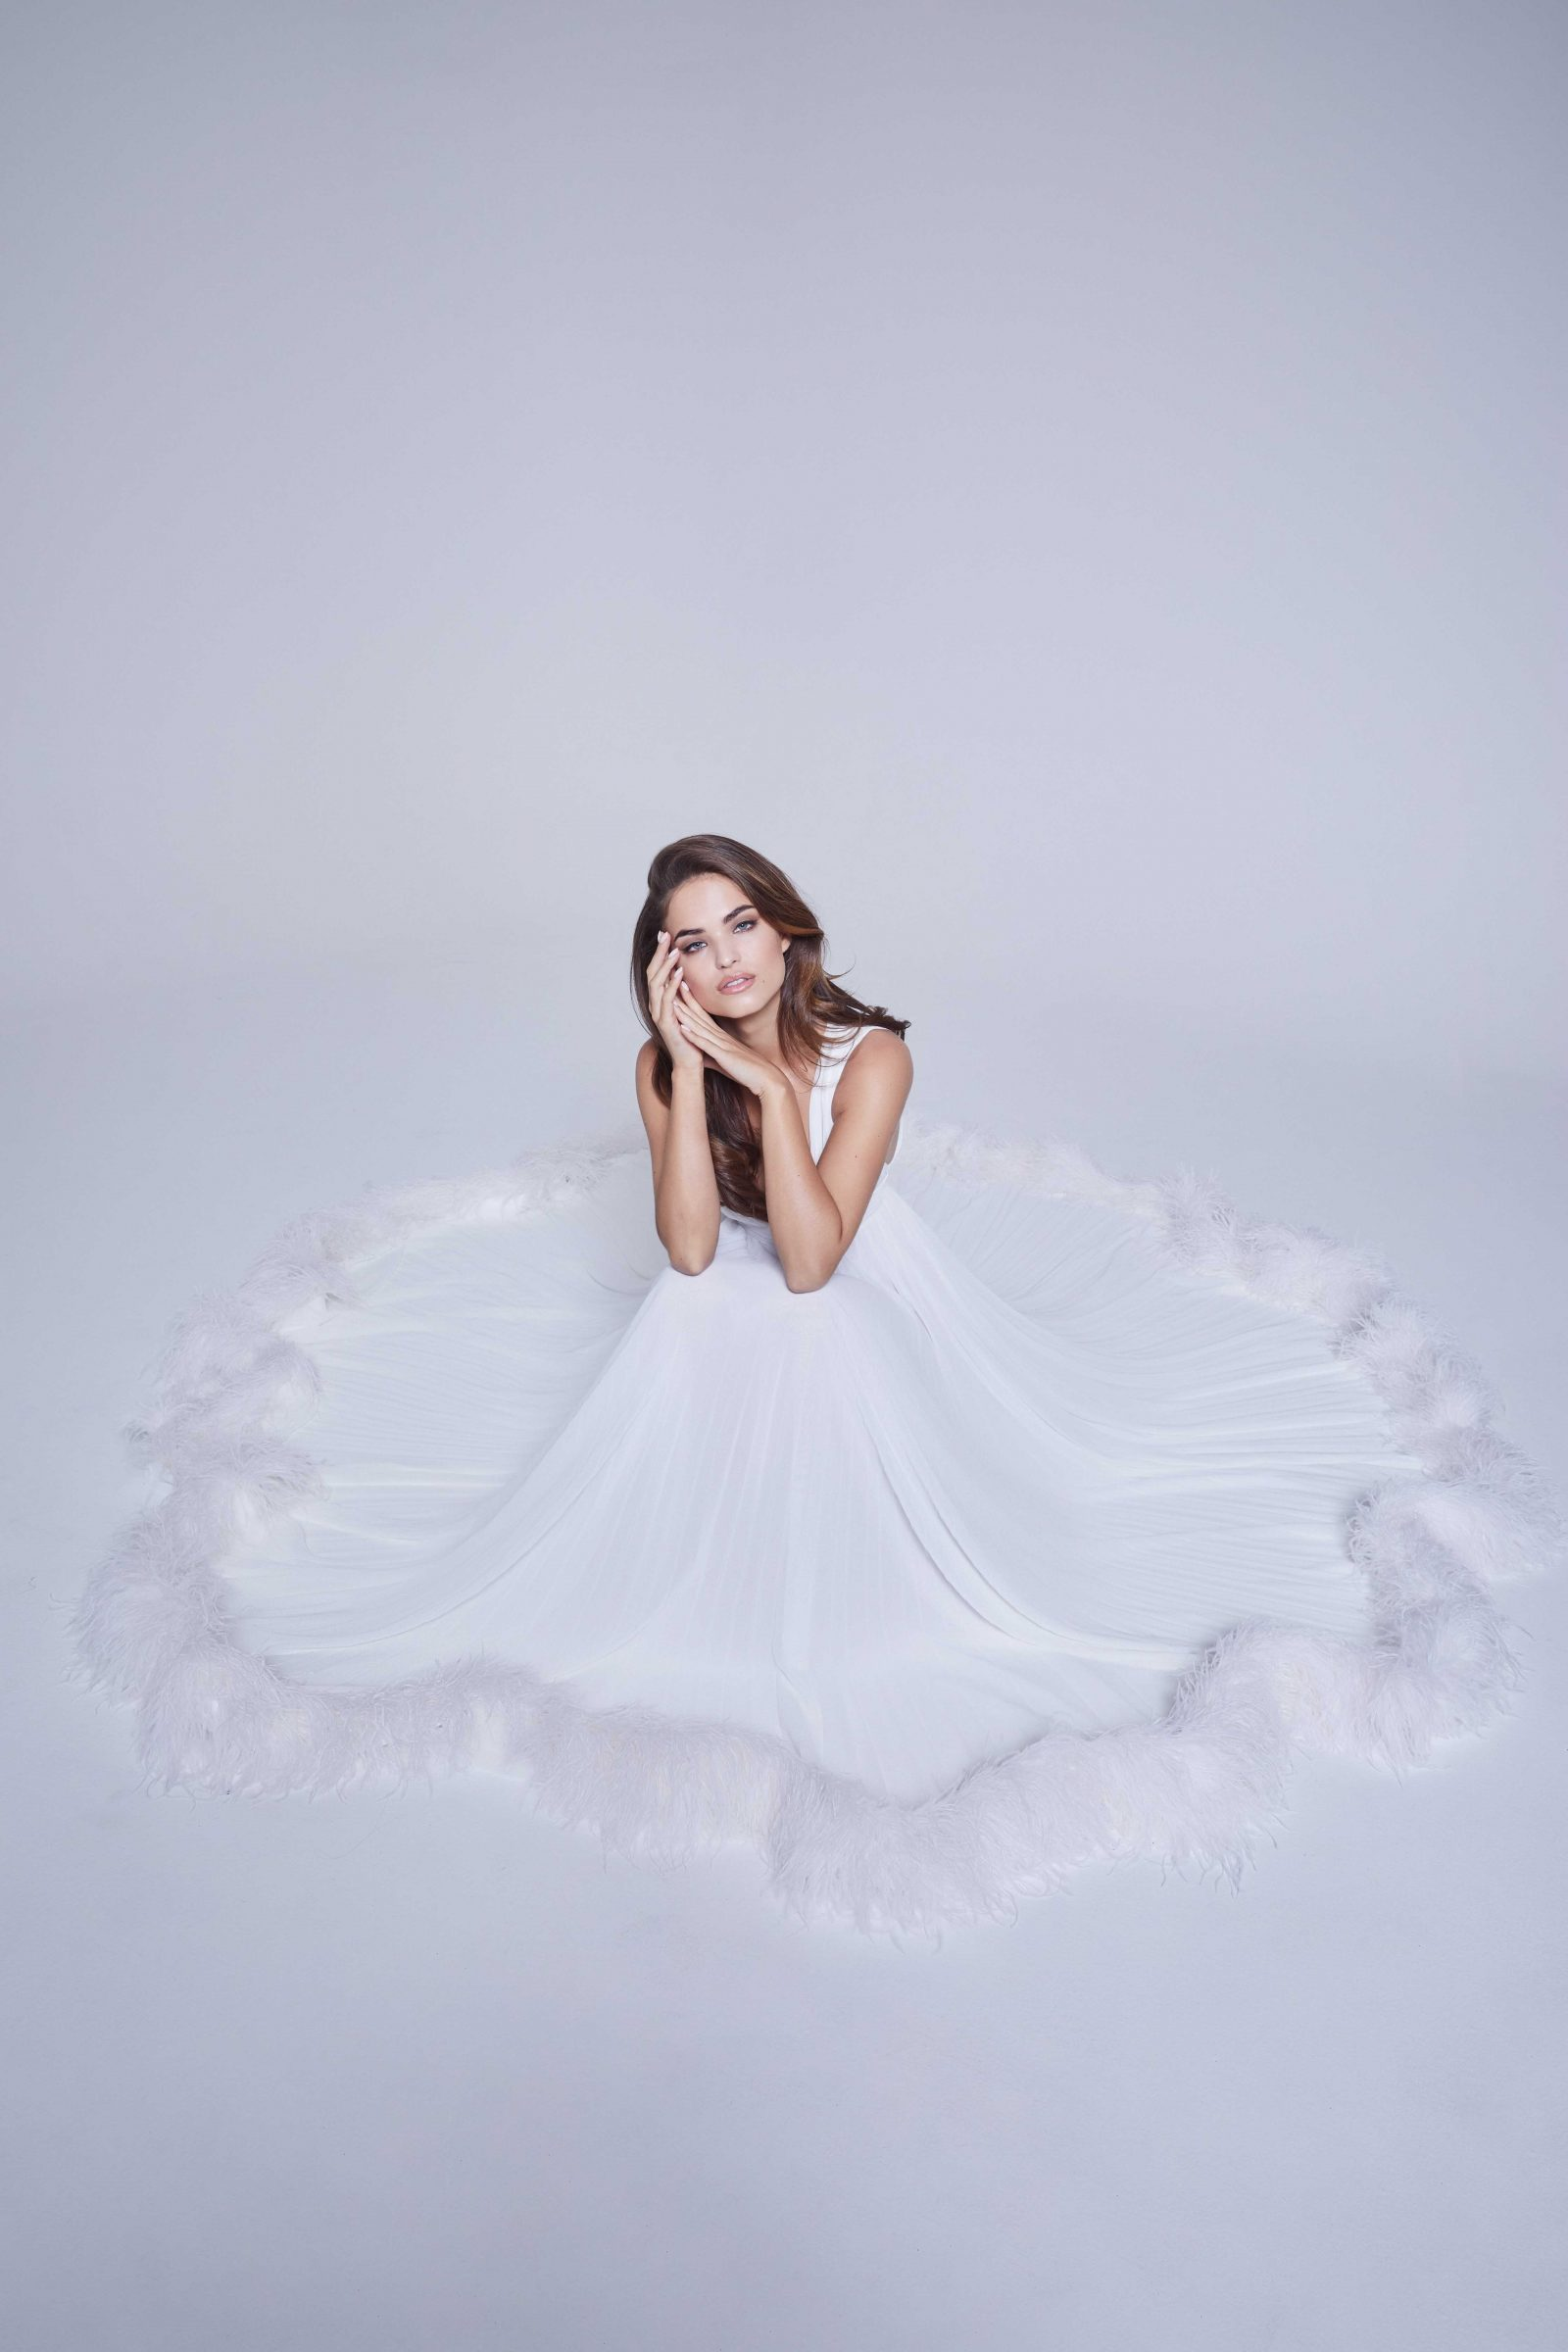 Bridal gown with feathers on bottom